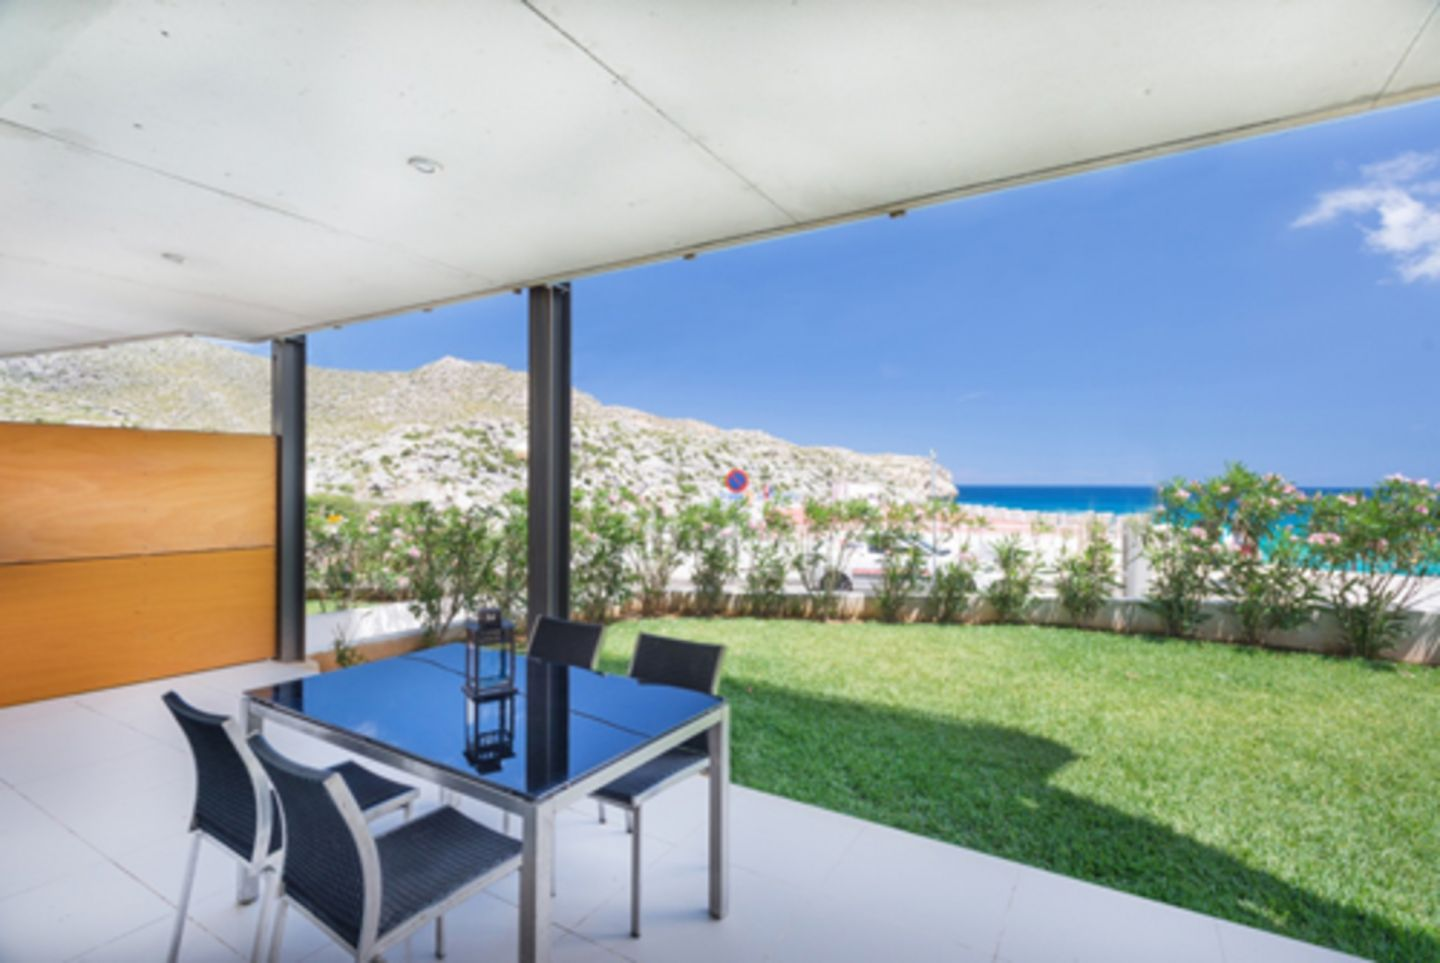 2 Bed Ground Floor for sale in Cala San Vicente 6